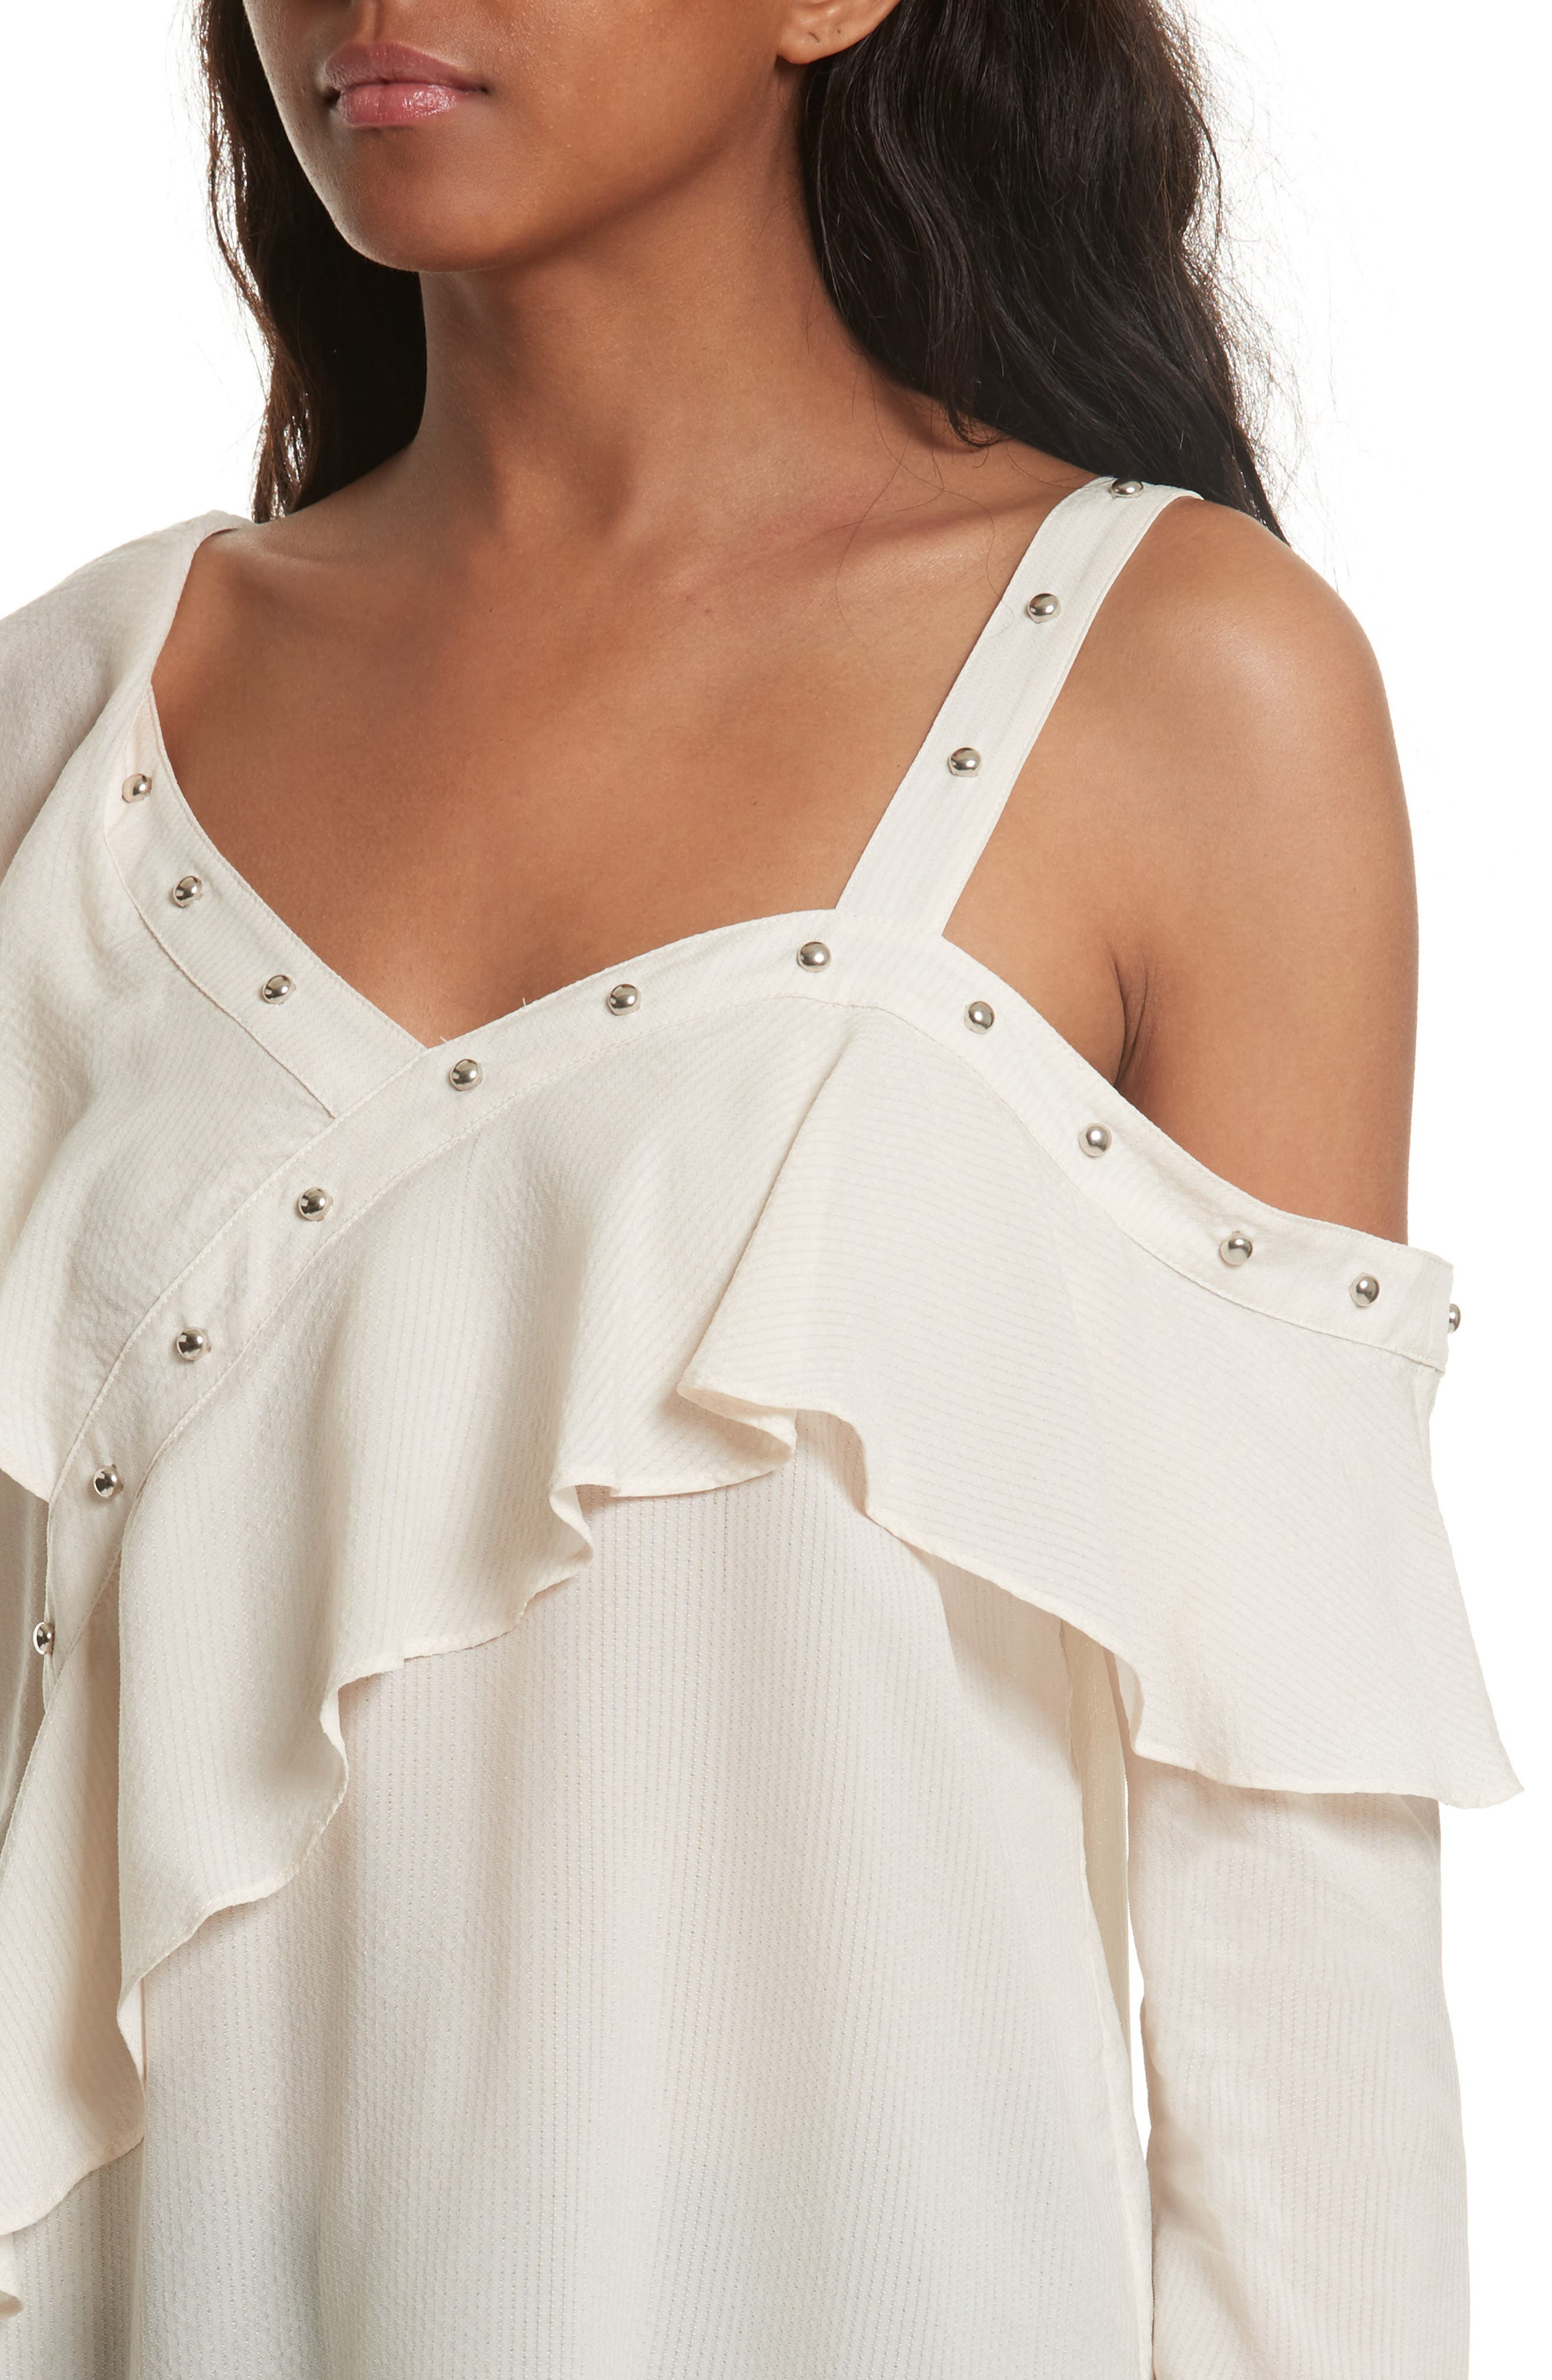 Clementine Off the Shoulder Top,                             Alternate thumbnail 5, color,                             White